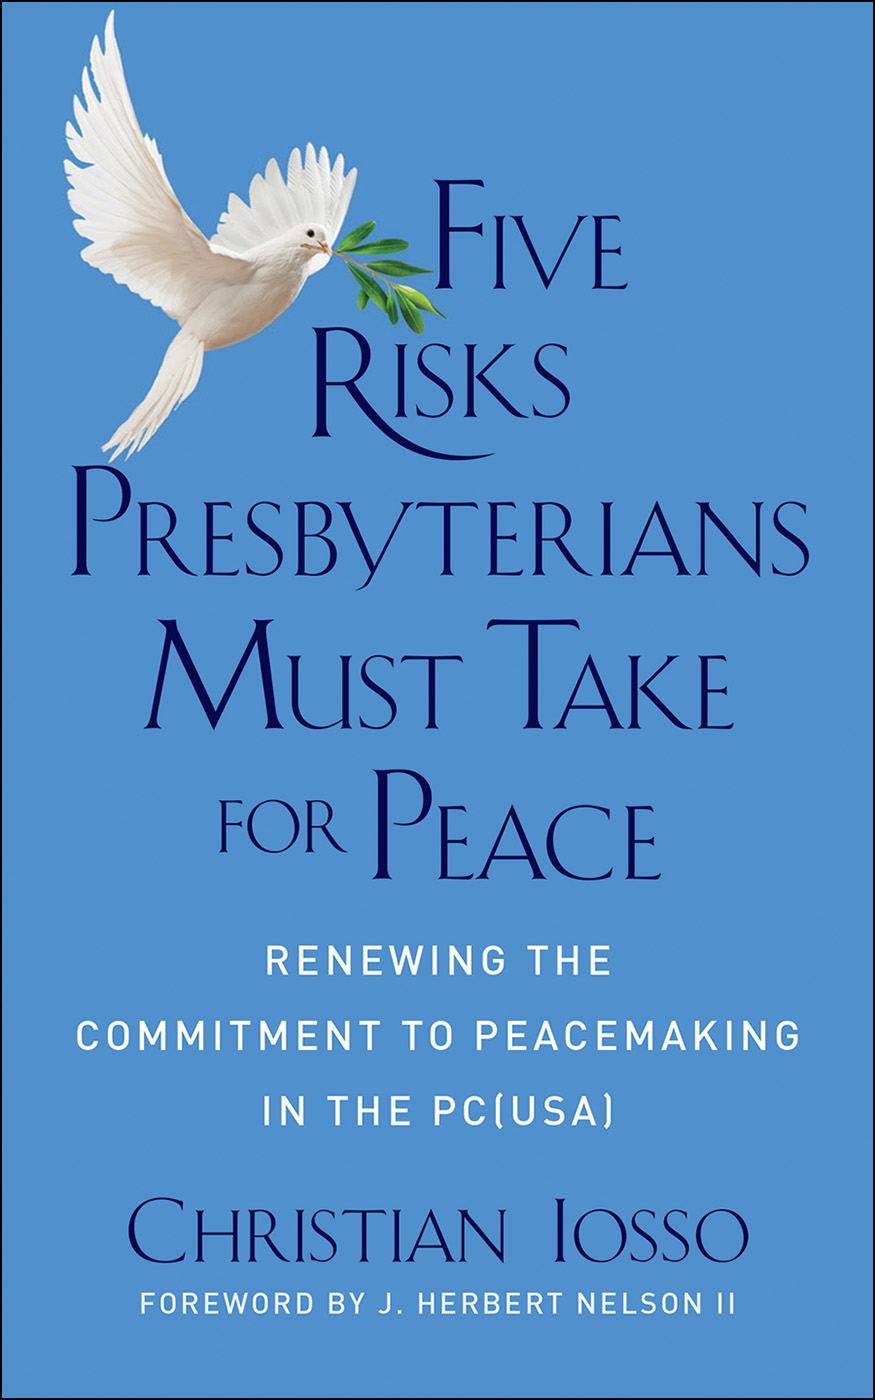 Five Risks Presbyterians Must Take for Peace